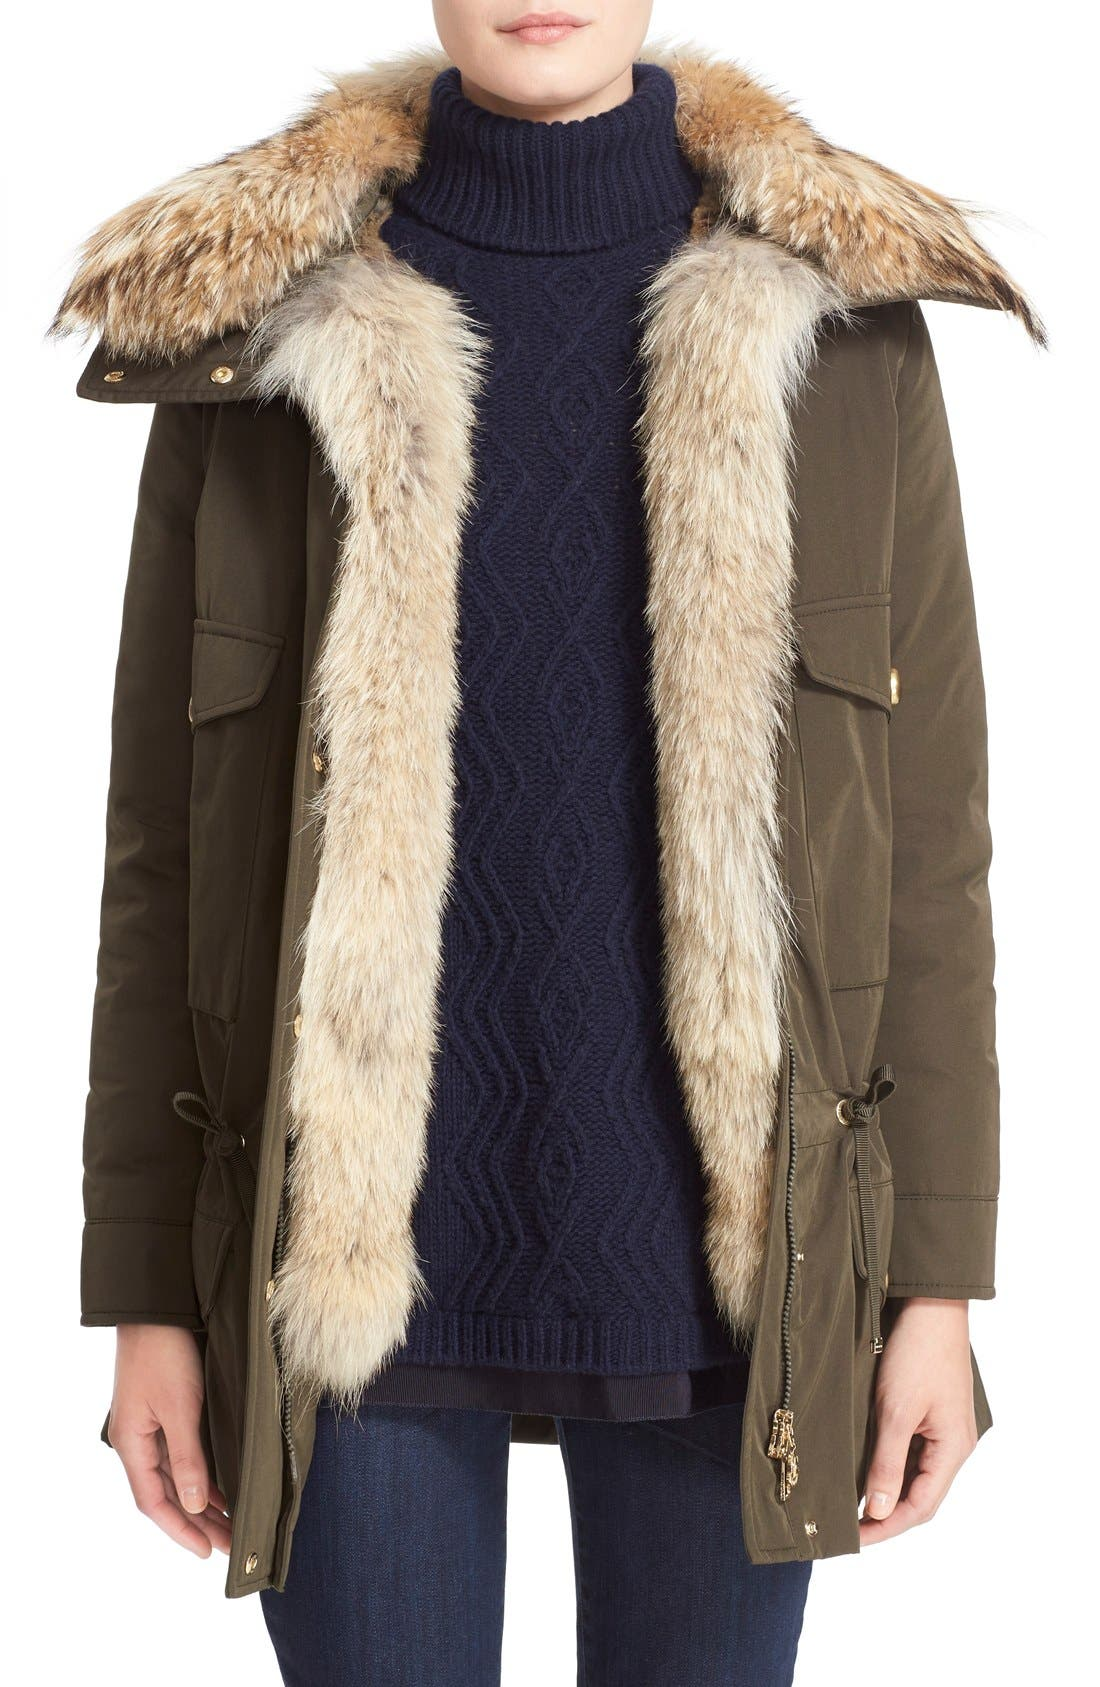 Main Image - Moncler 'Margarita' Down Jacket with Removable Genuine Coyote Collar and Rabbit Fur Vest